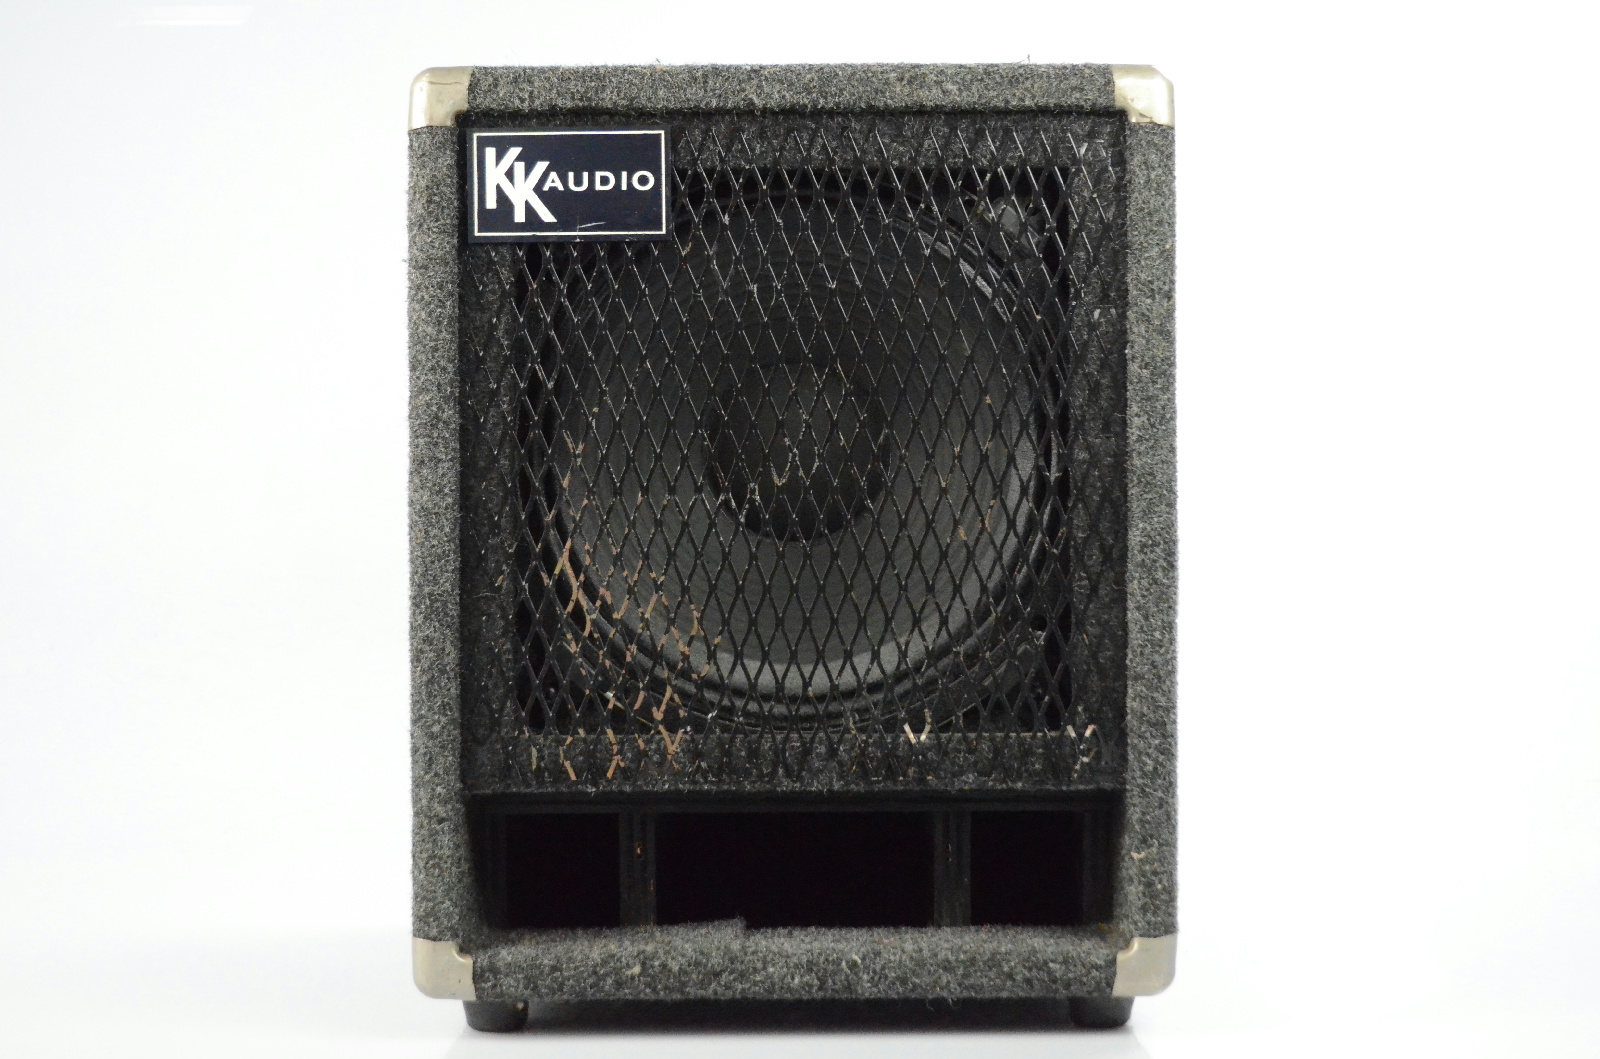 KK Audio 1x12 Celestion Guitar Speaker Extension Cabinet #33255